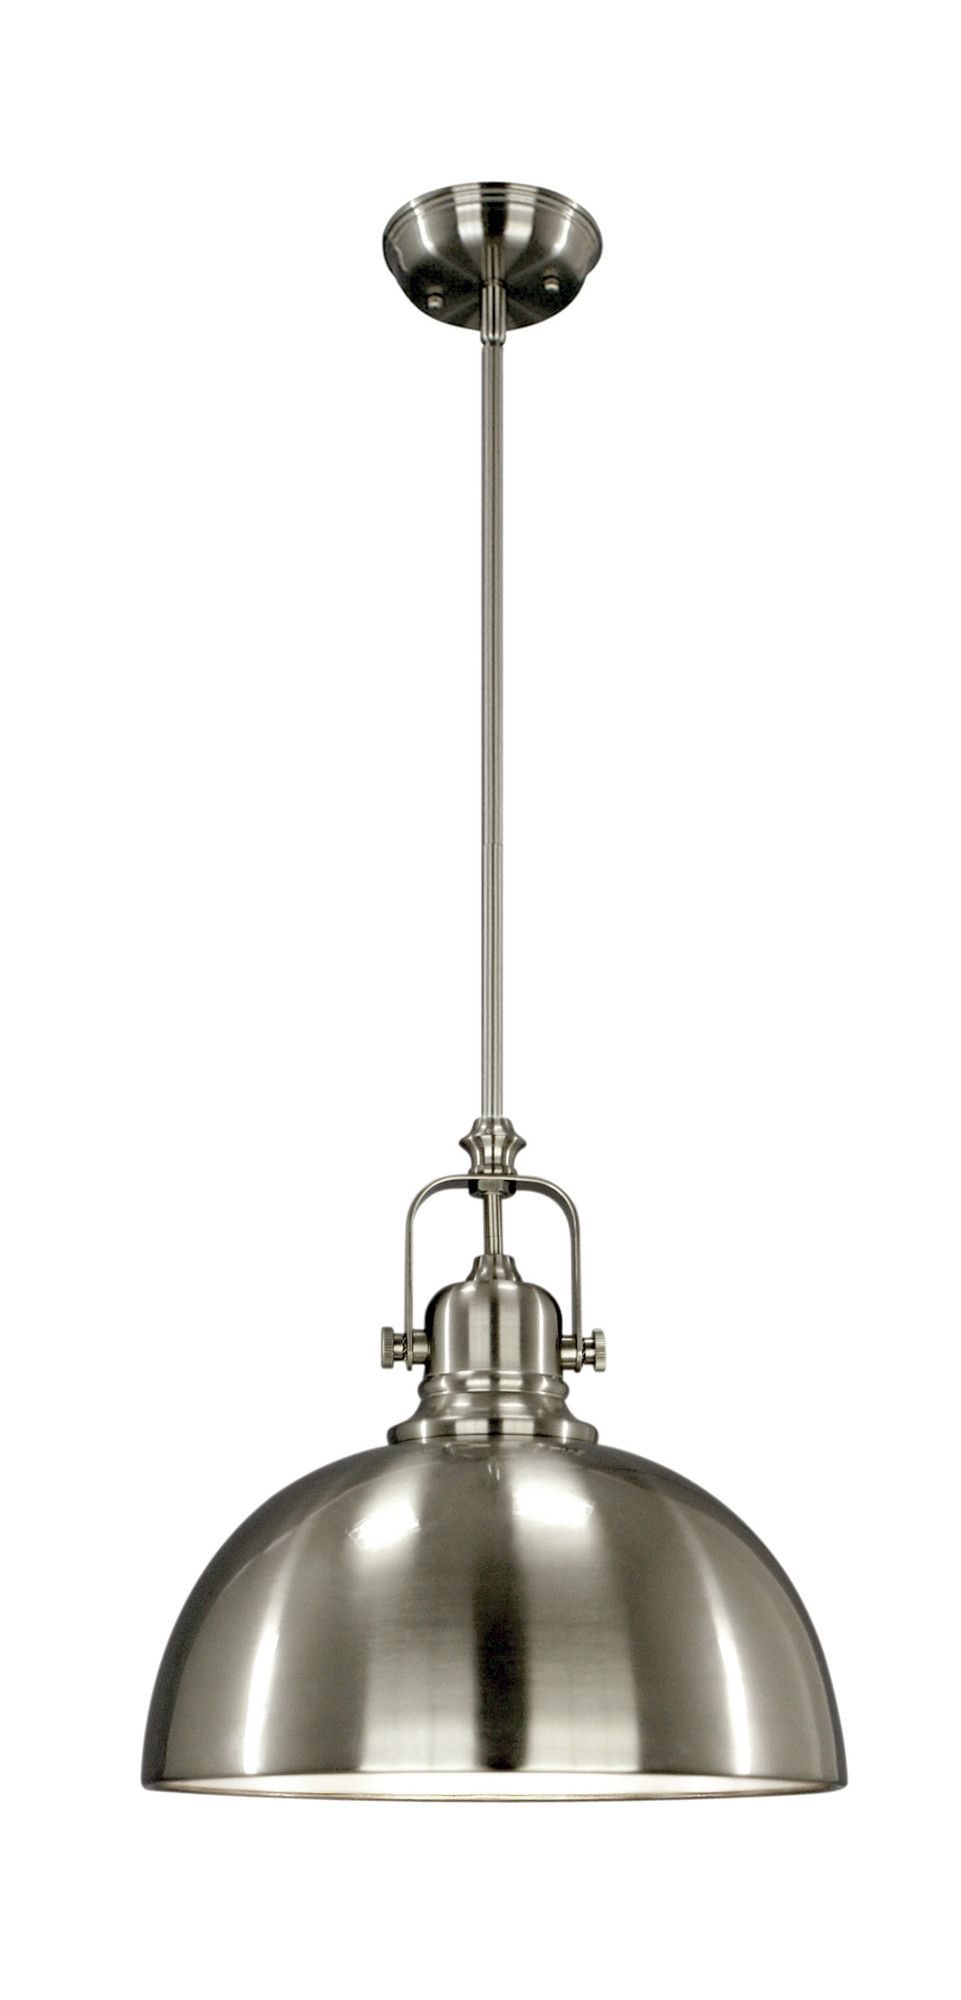 Nickel Pendant Lighting Kitchen Brushed Nickel Kitchen Lighting Soul Speak Designs